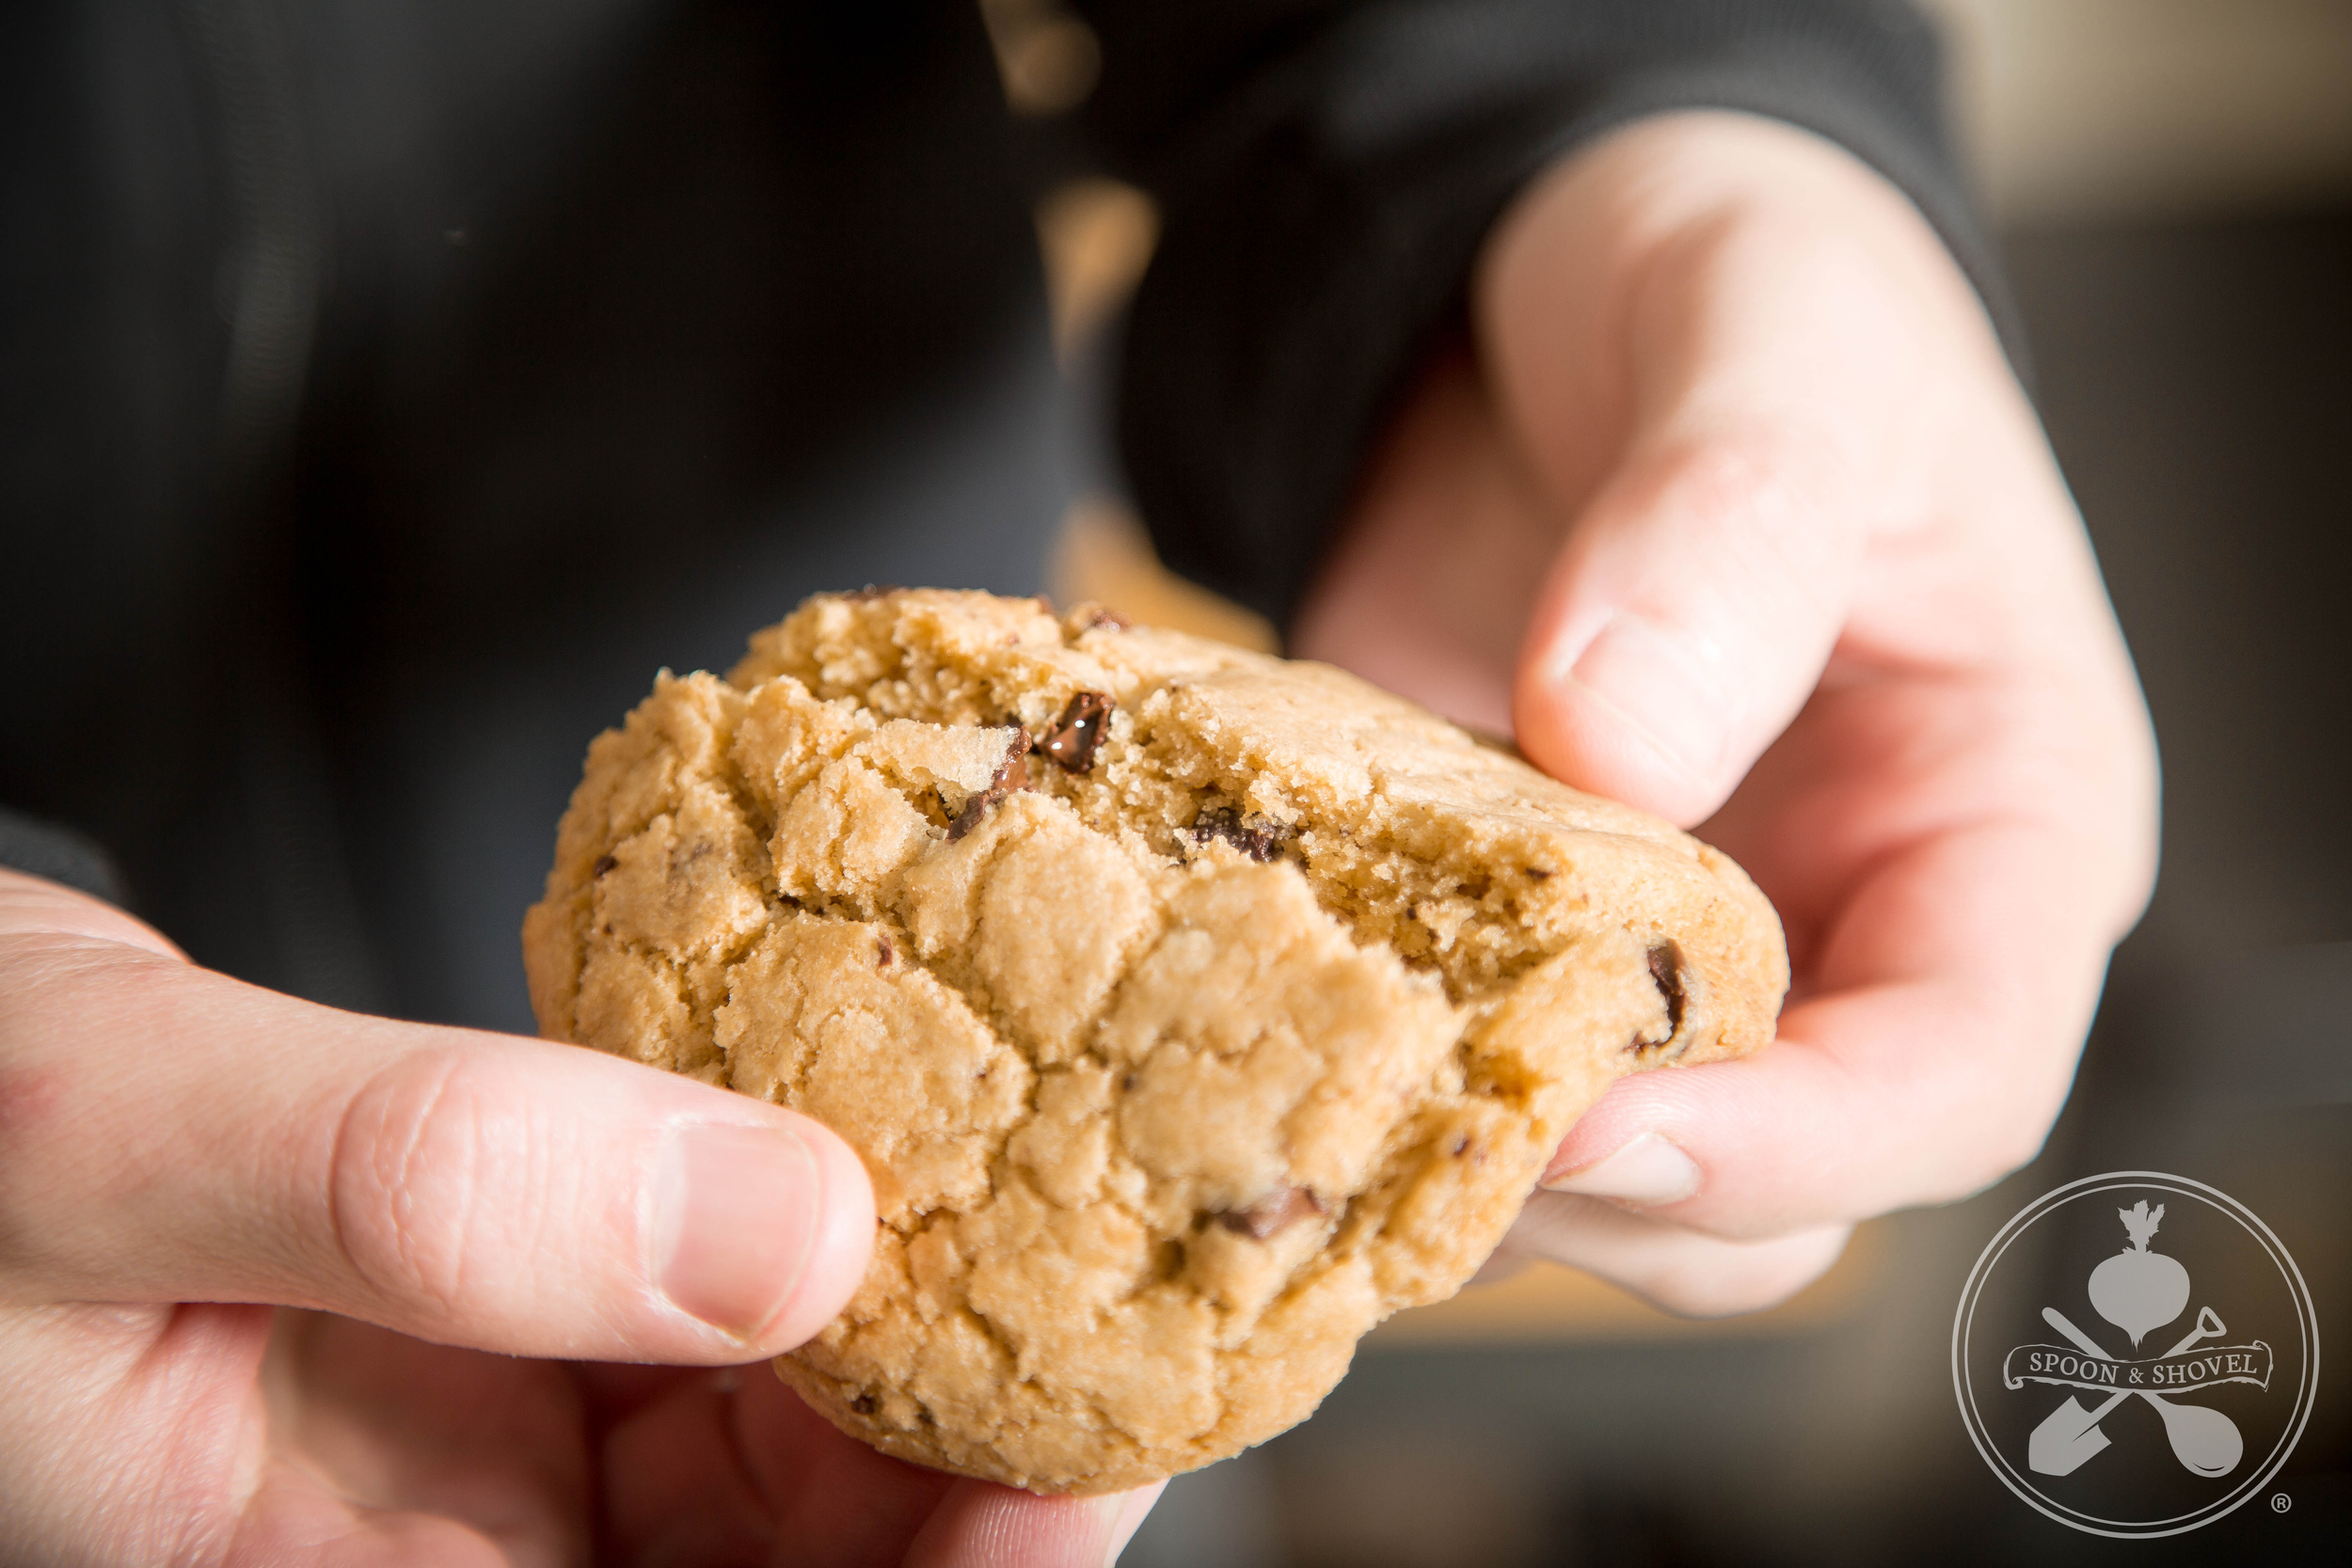 Classic chocolate chip cookies veganized by the Spoon + Shovel